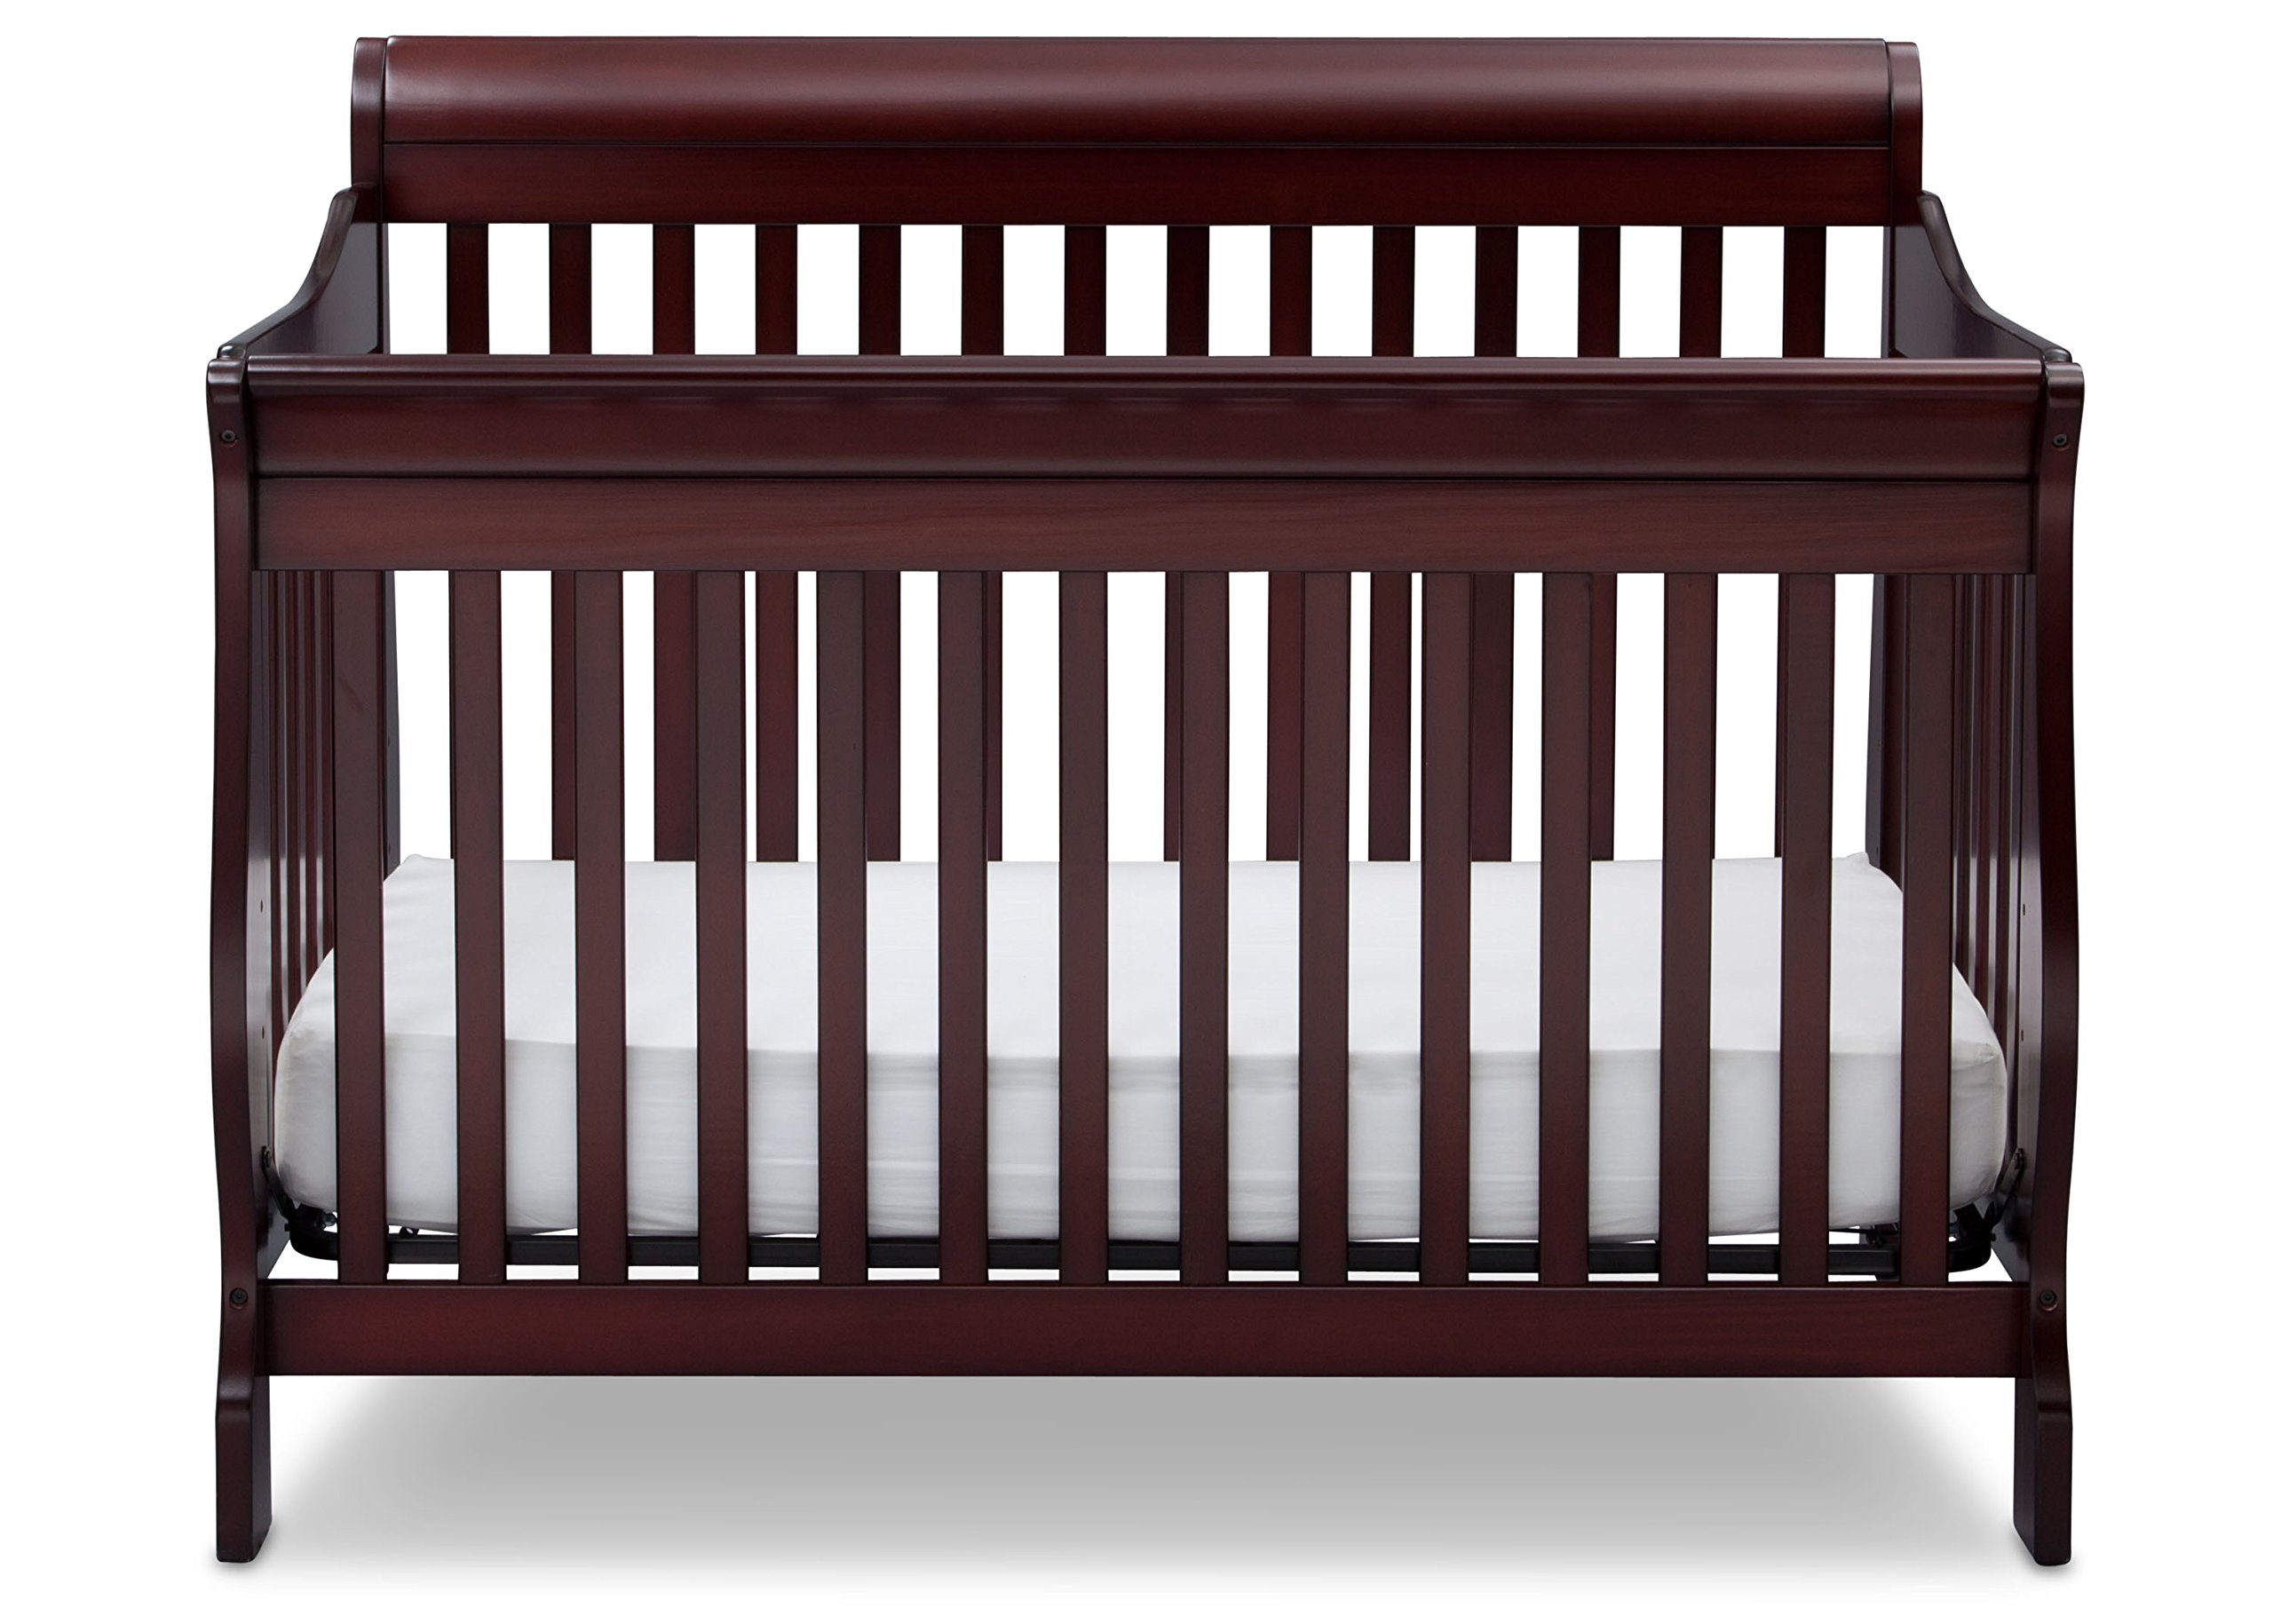 Delta Children Canton 4-in-1 Convertible Crib, Espresso Cherry by Delta Children (Image #4)